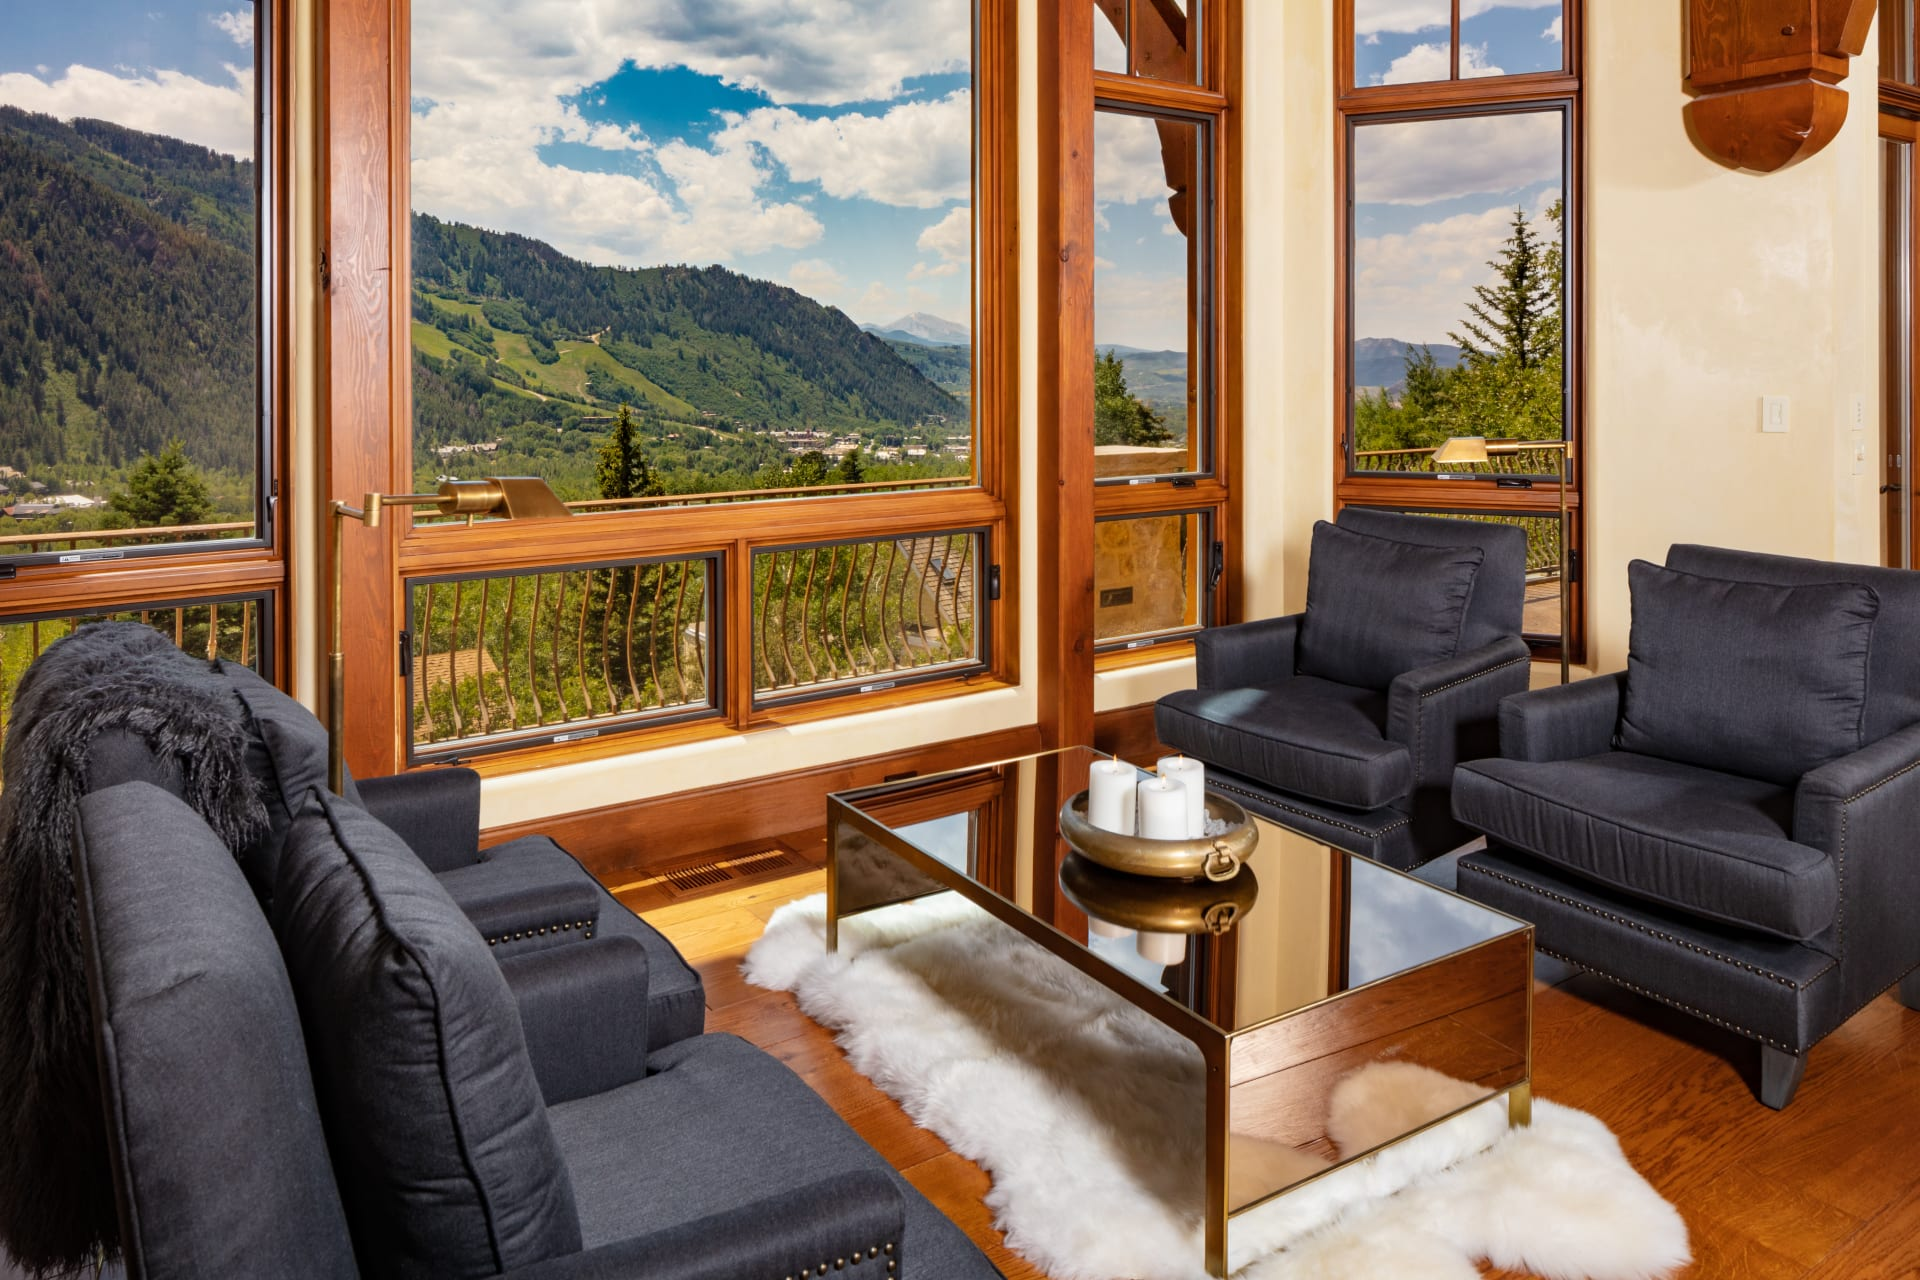 Serene Location with Captivating Views